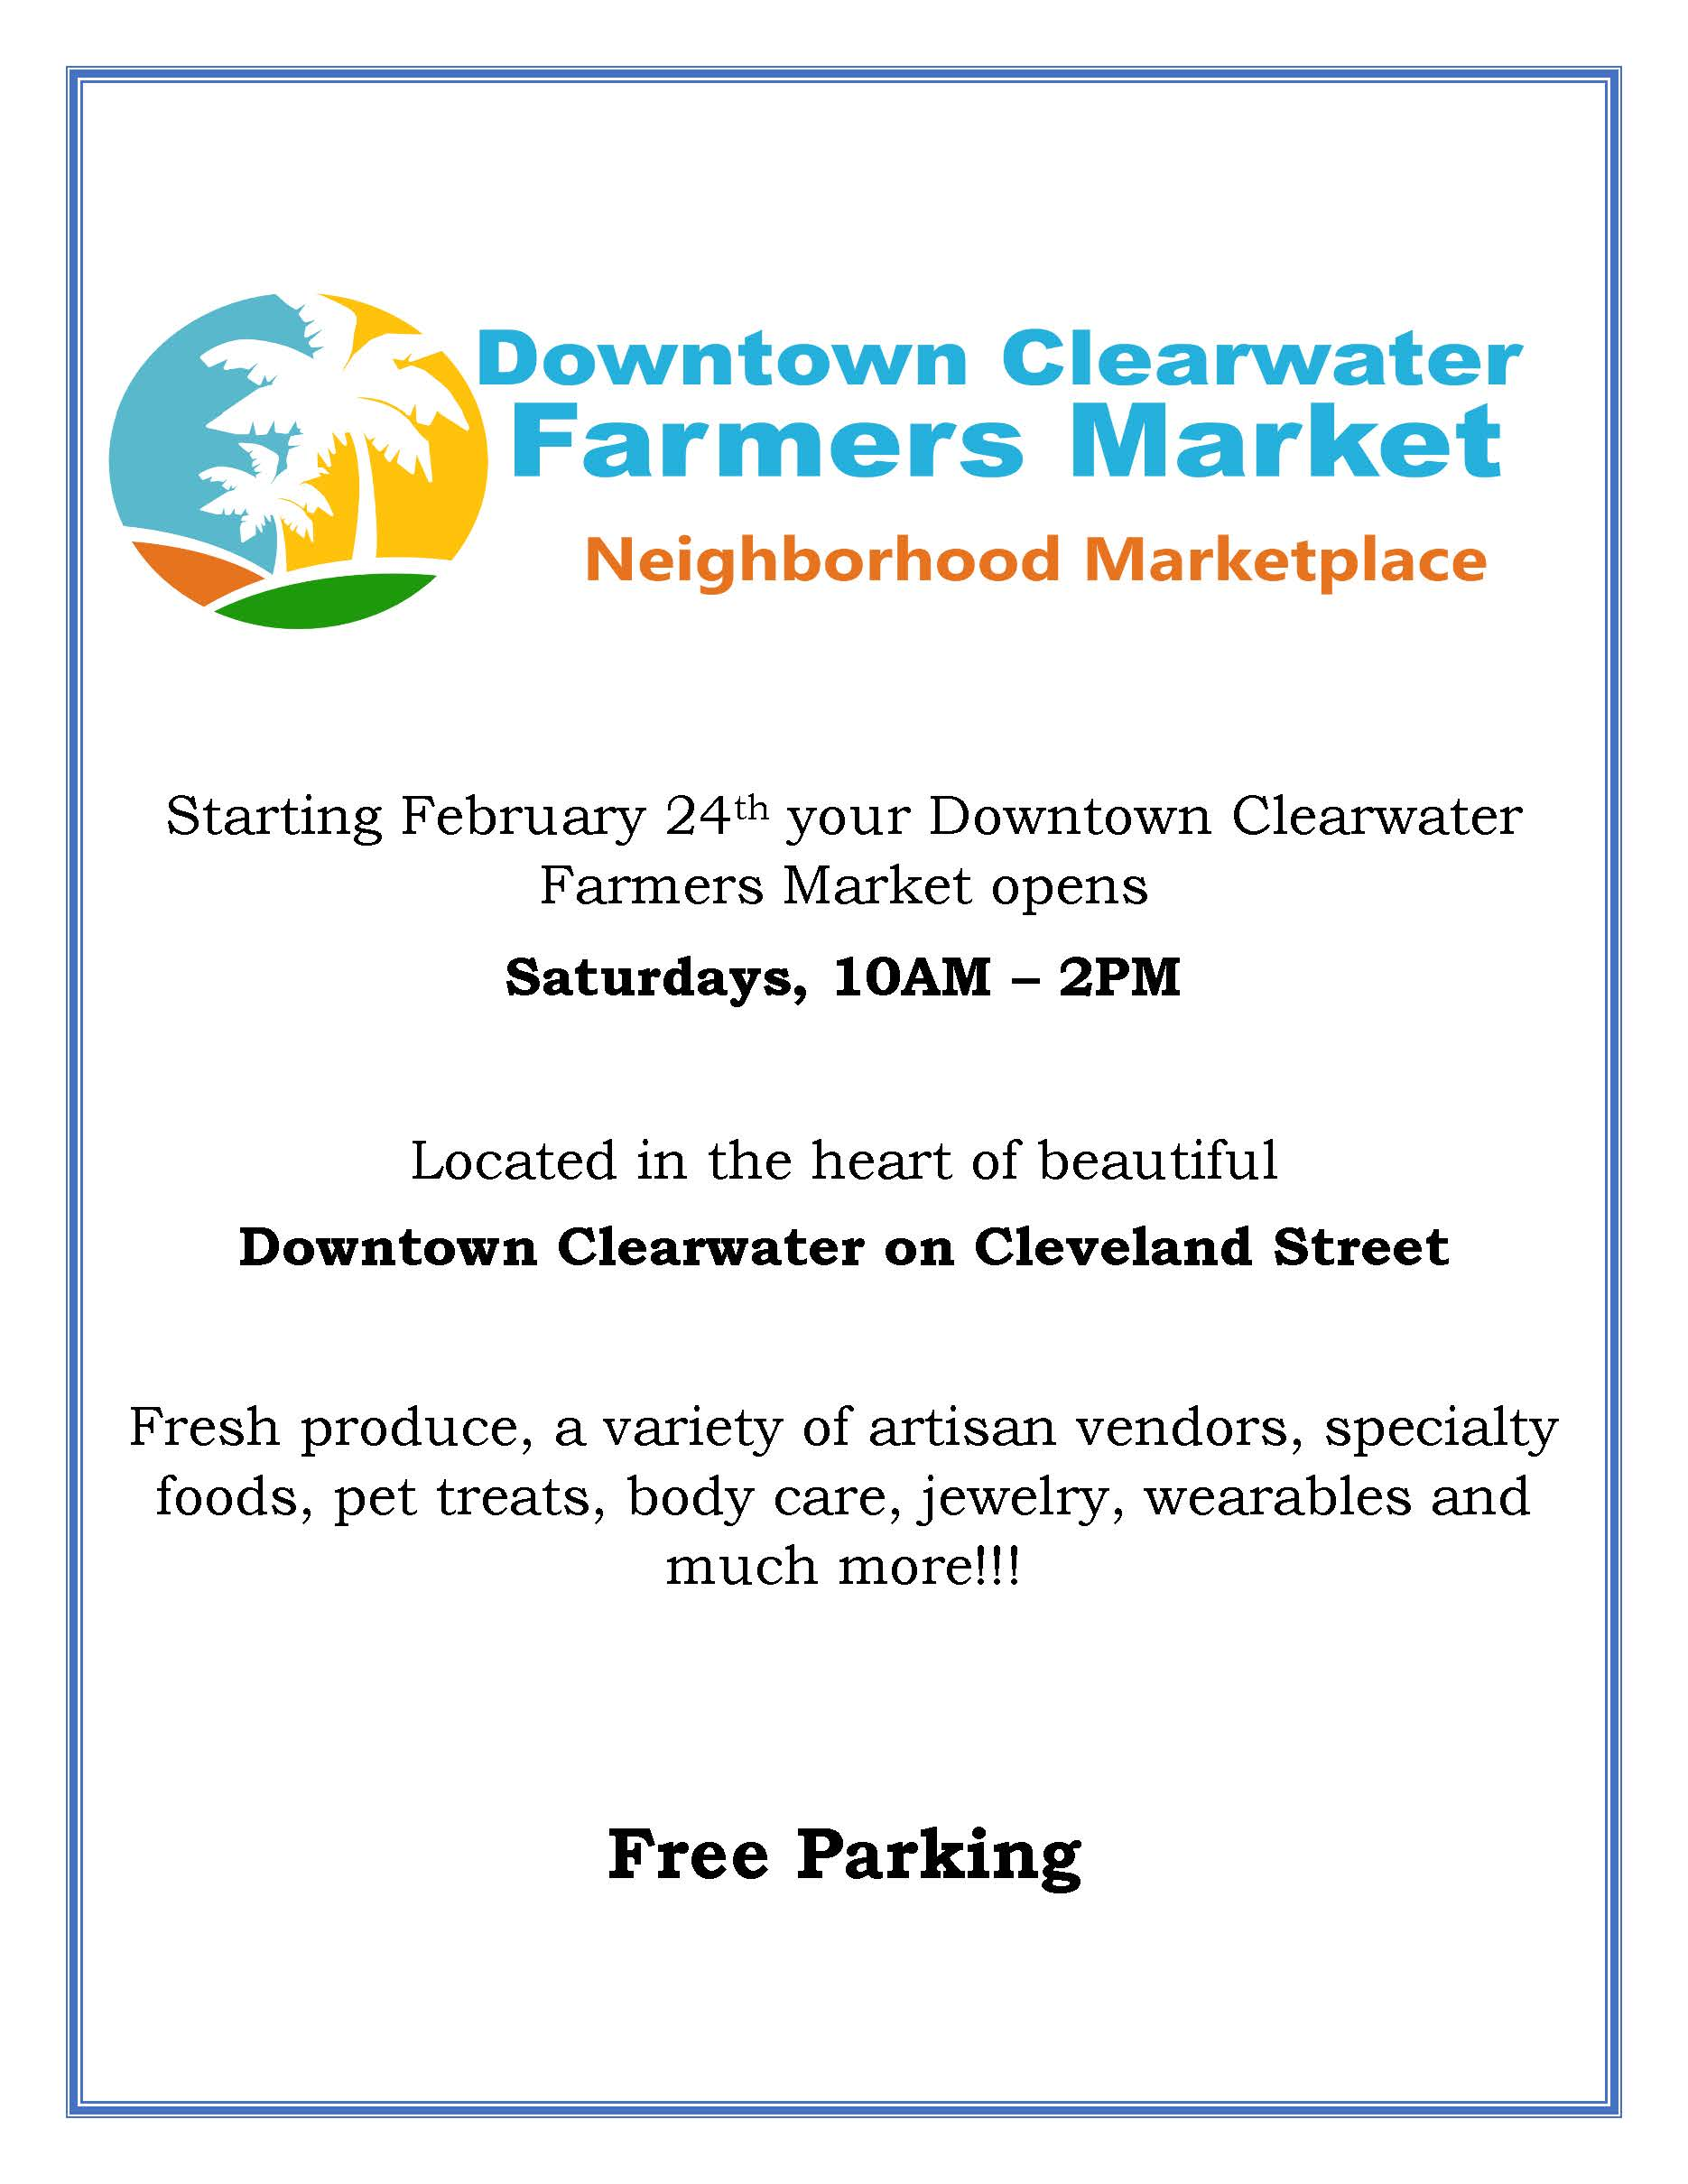 Downtown Clearwater Farmers Market Grand Opening On Cleveland Street